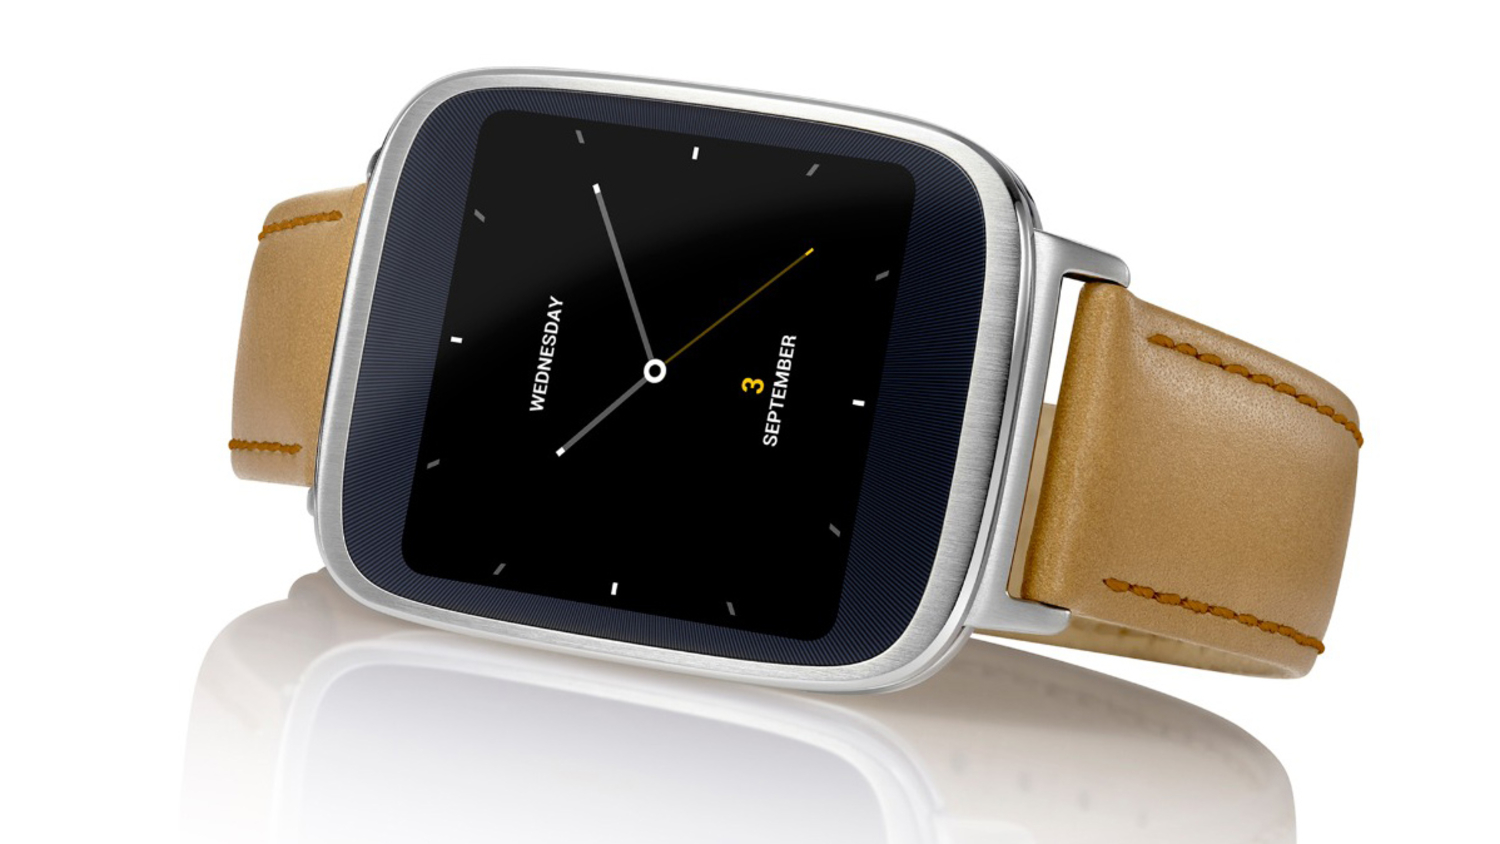 The New Addition To The Android Wear Family